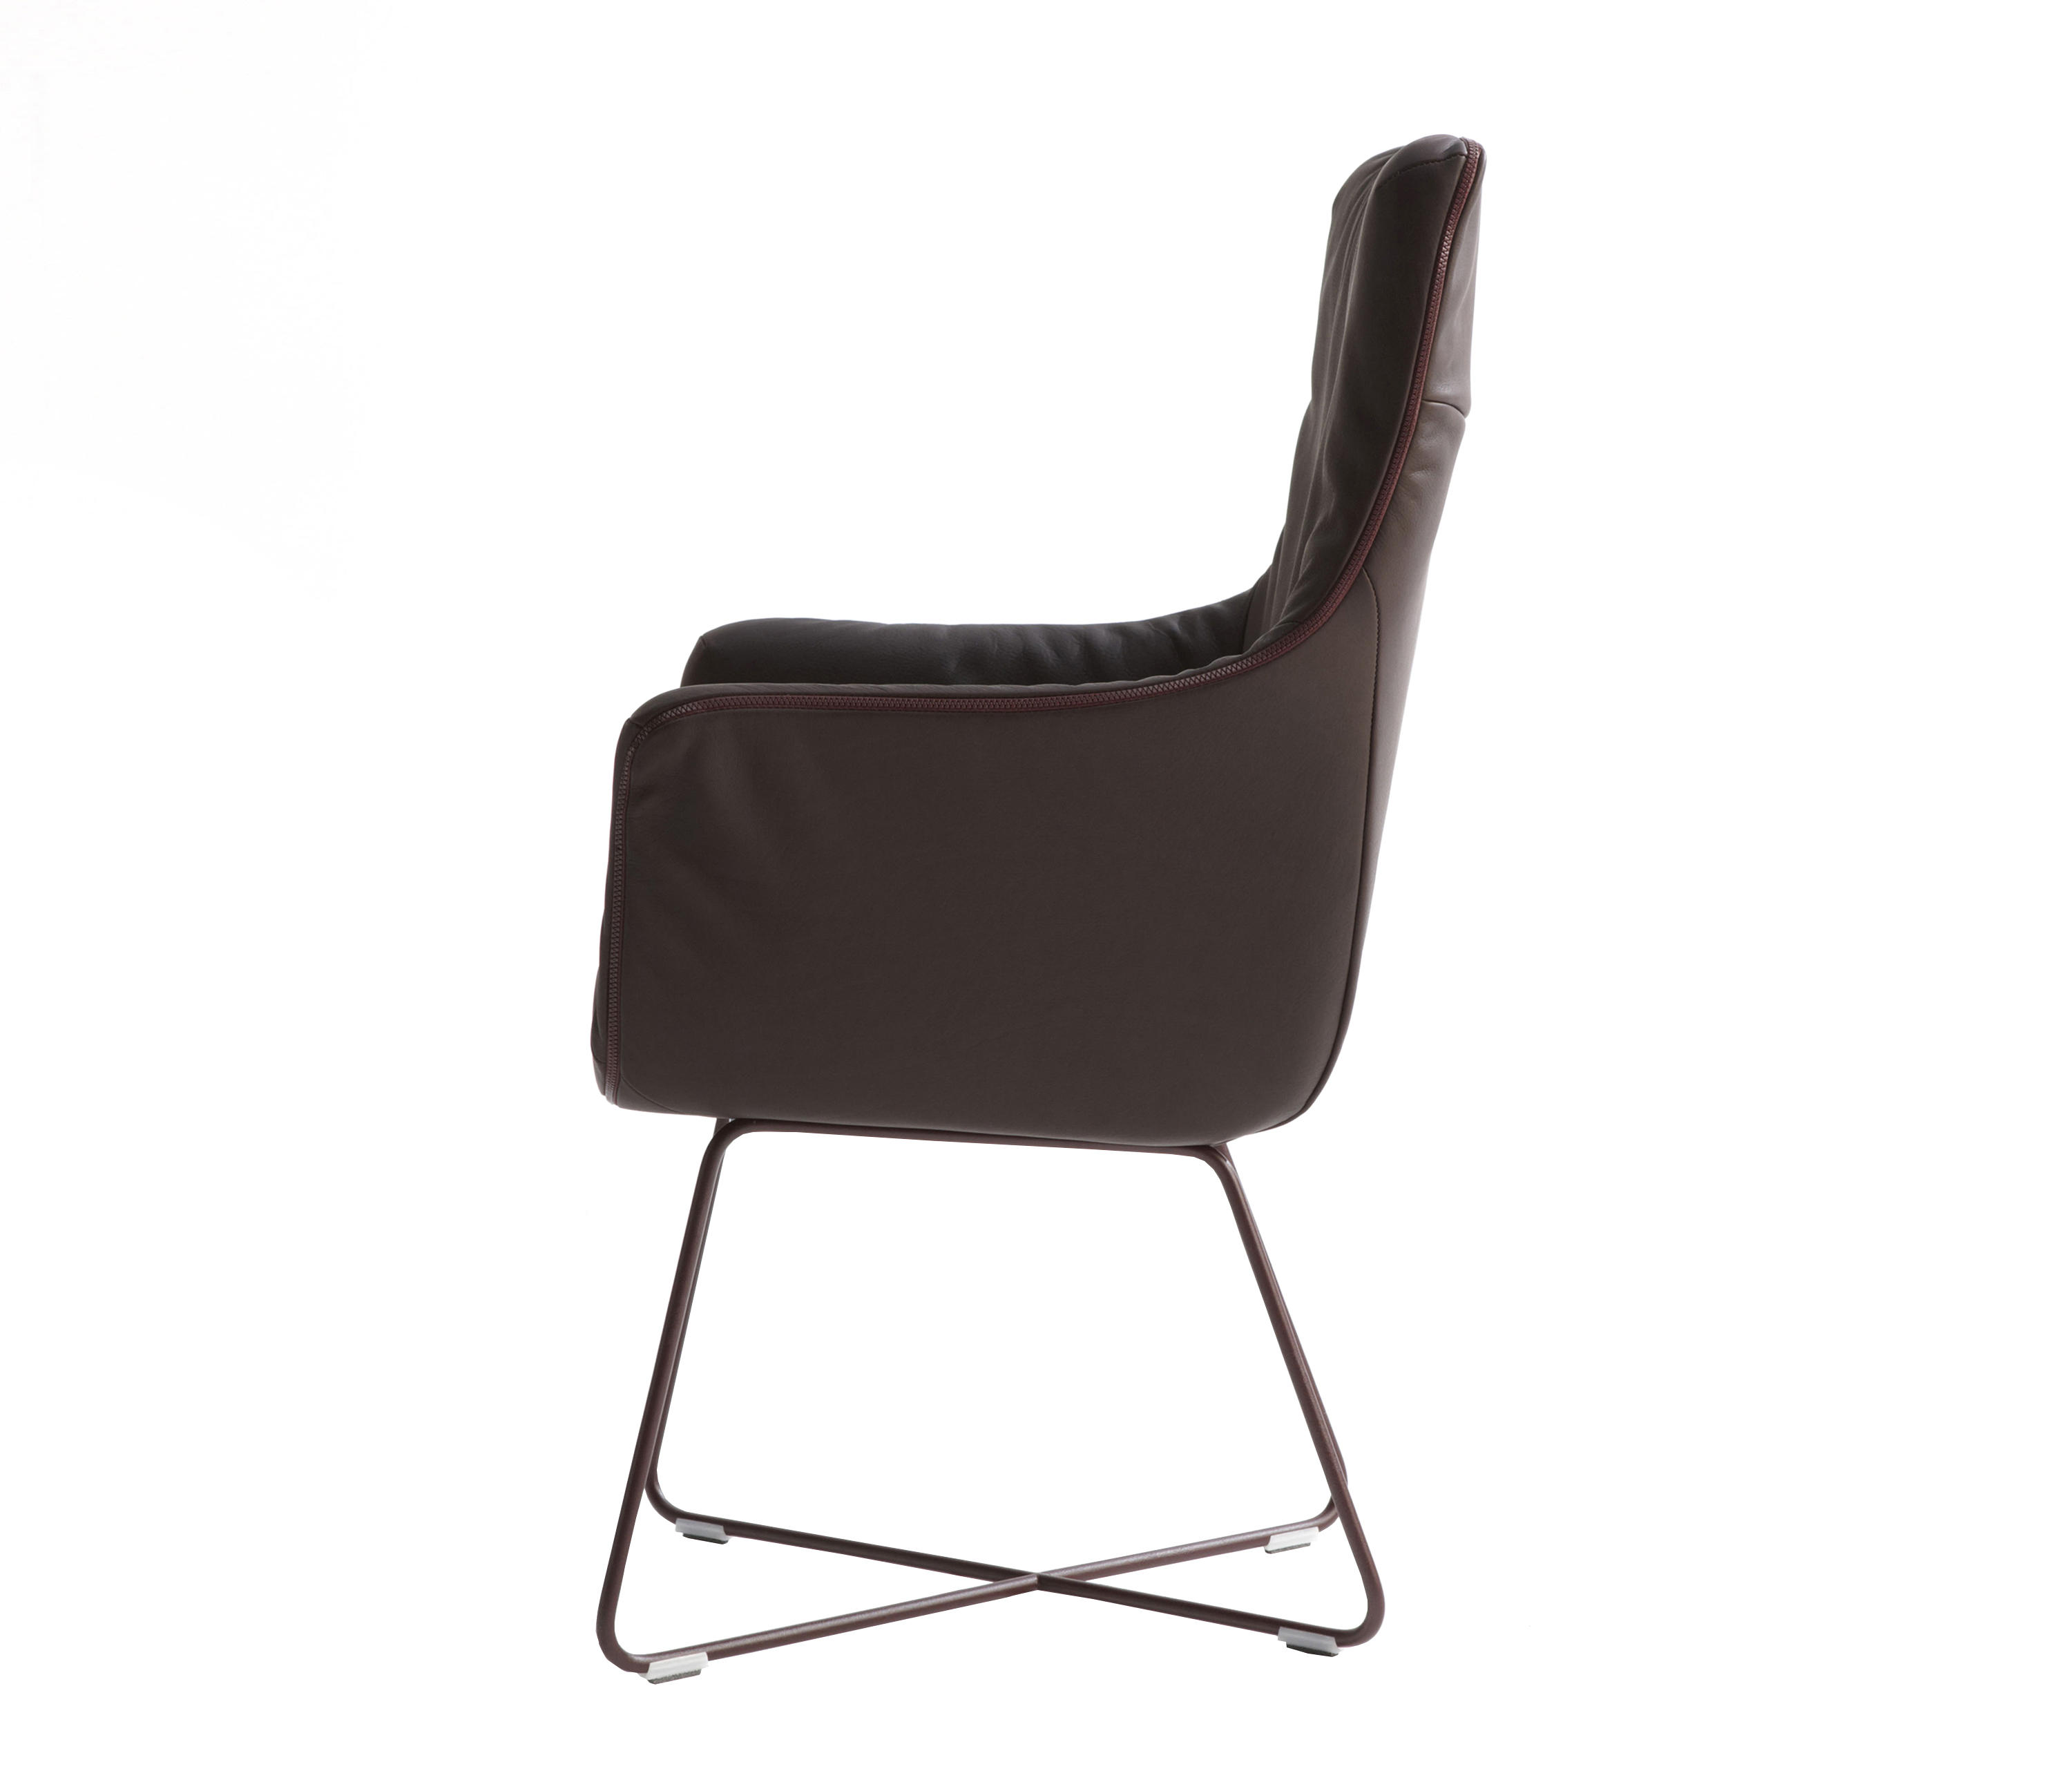 ... Chief Dining Chair By Label Van Den Berg | Chairs